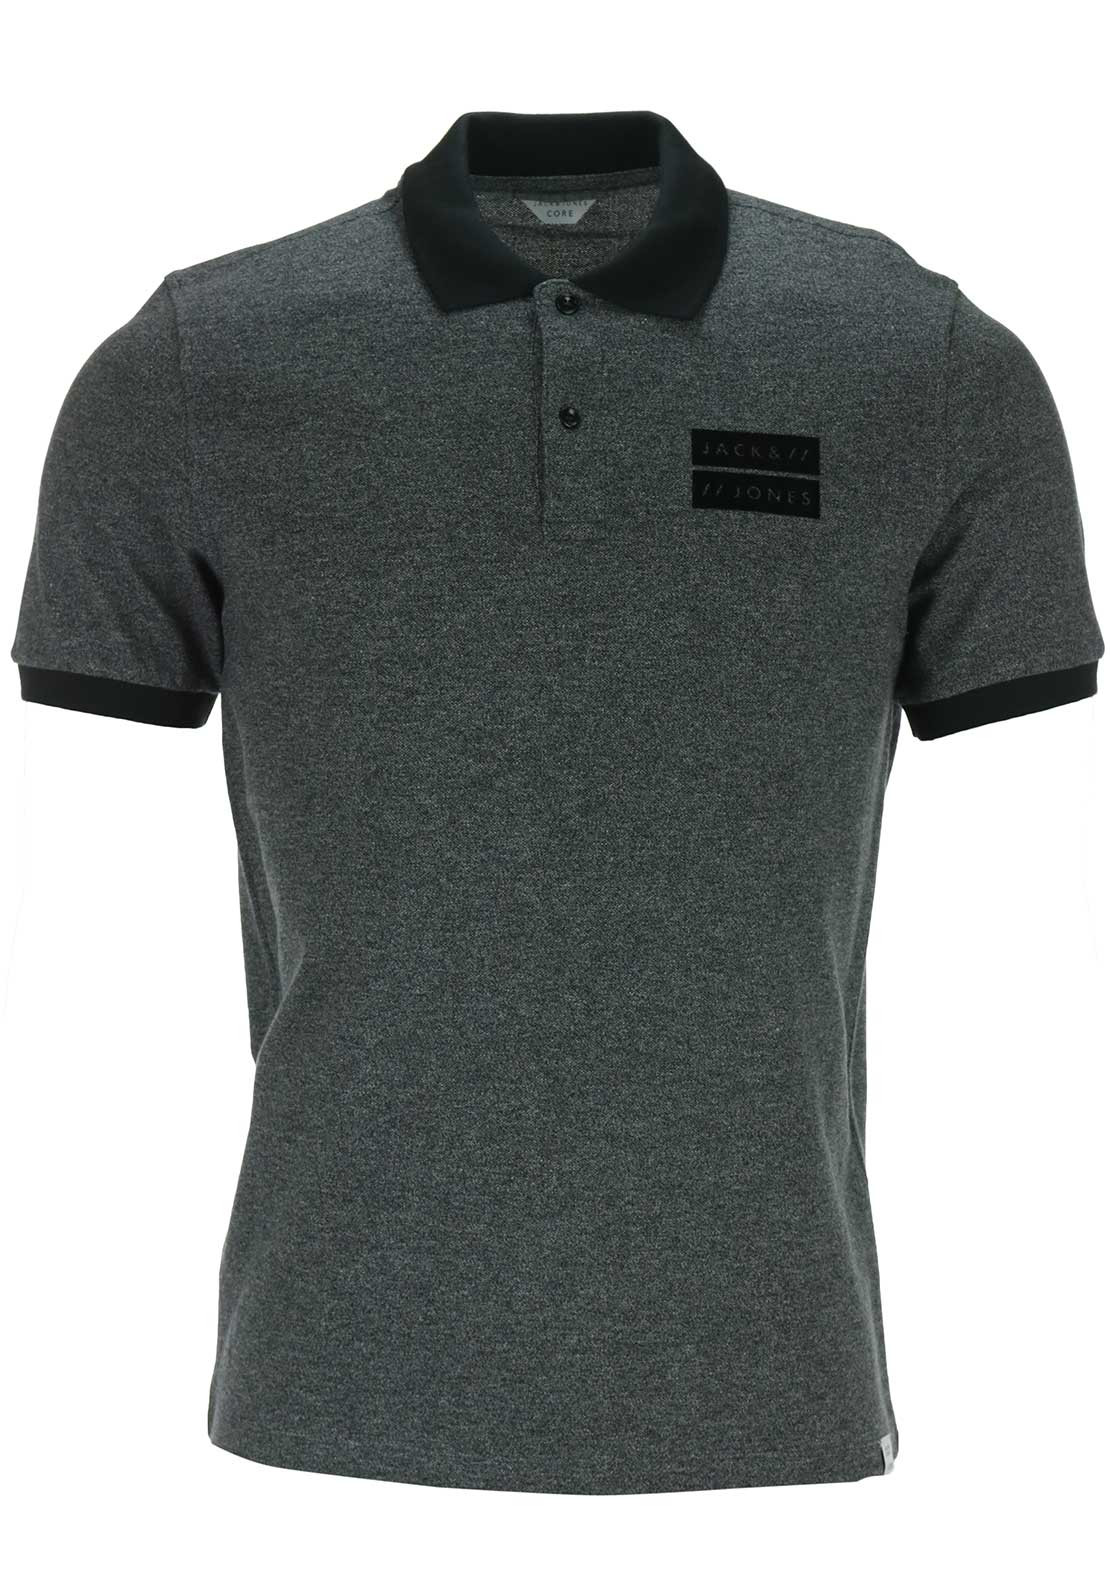 Jack & Jones Core Harry Polo Shirt, Grey